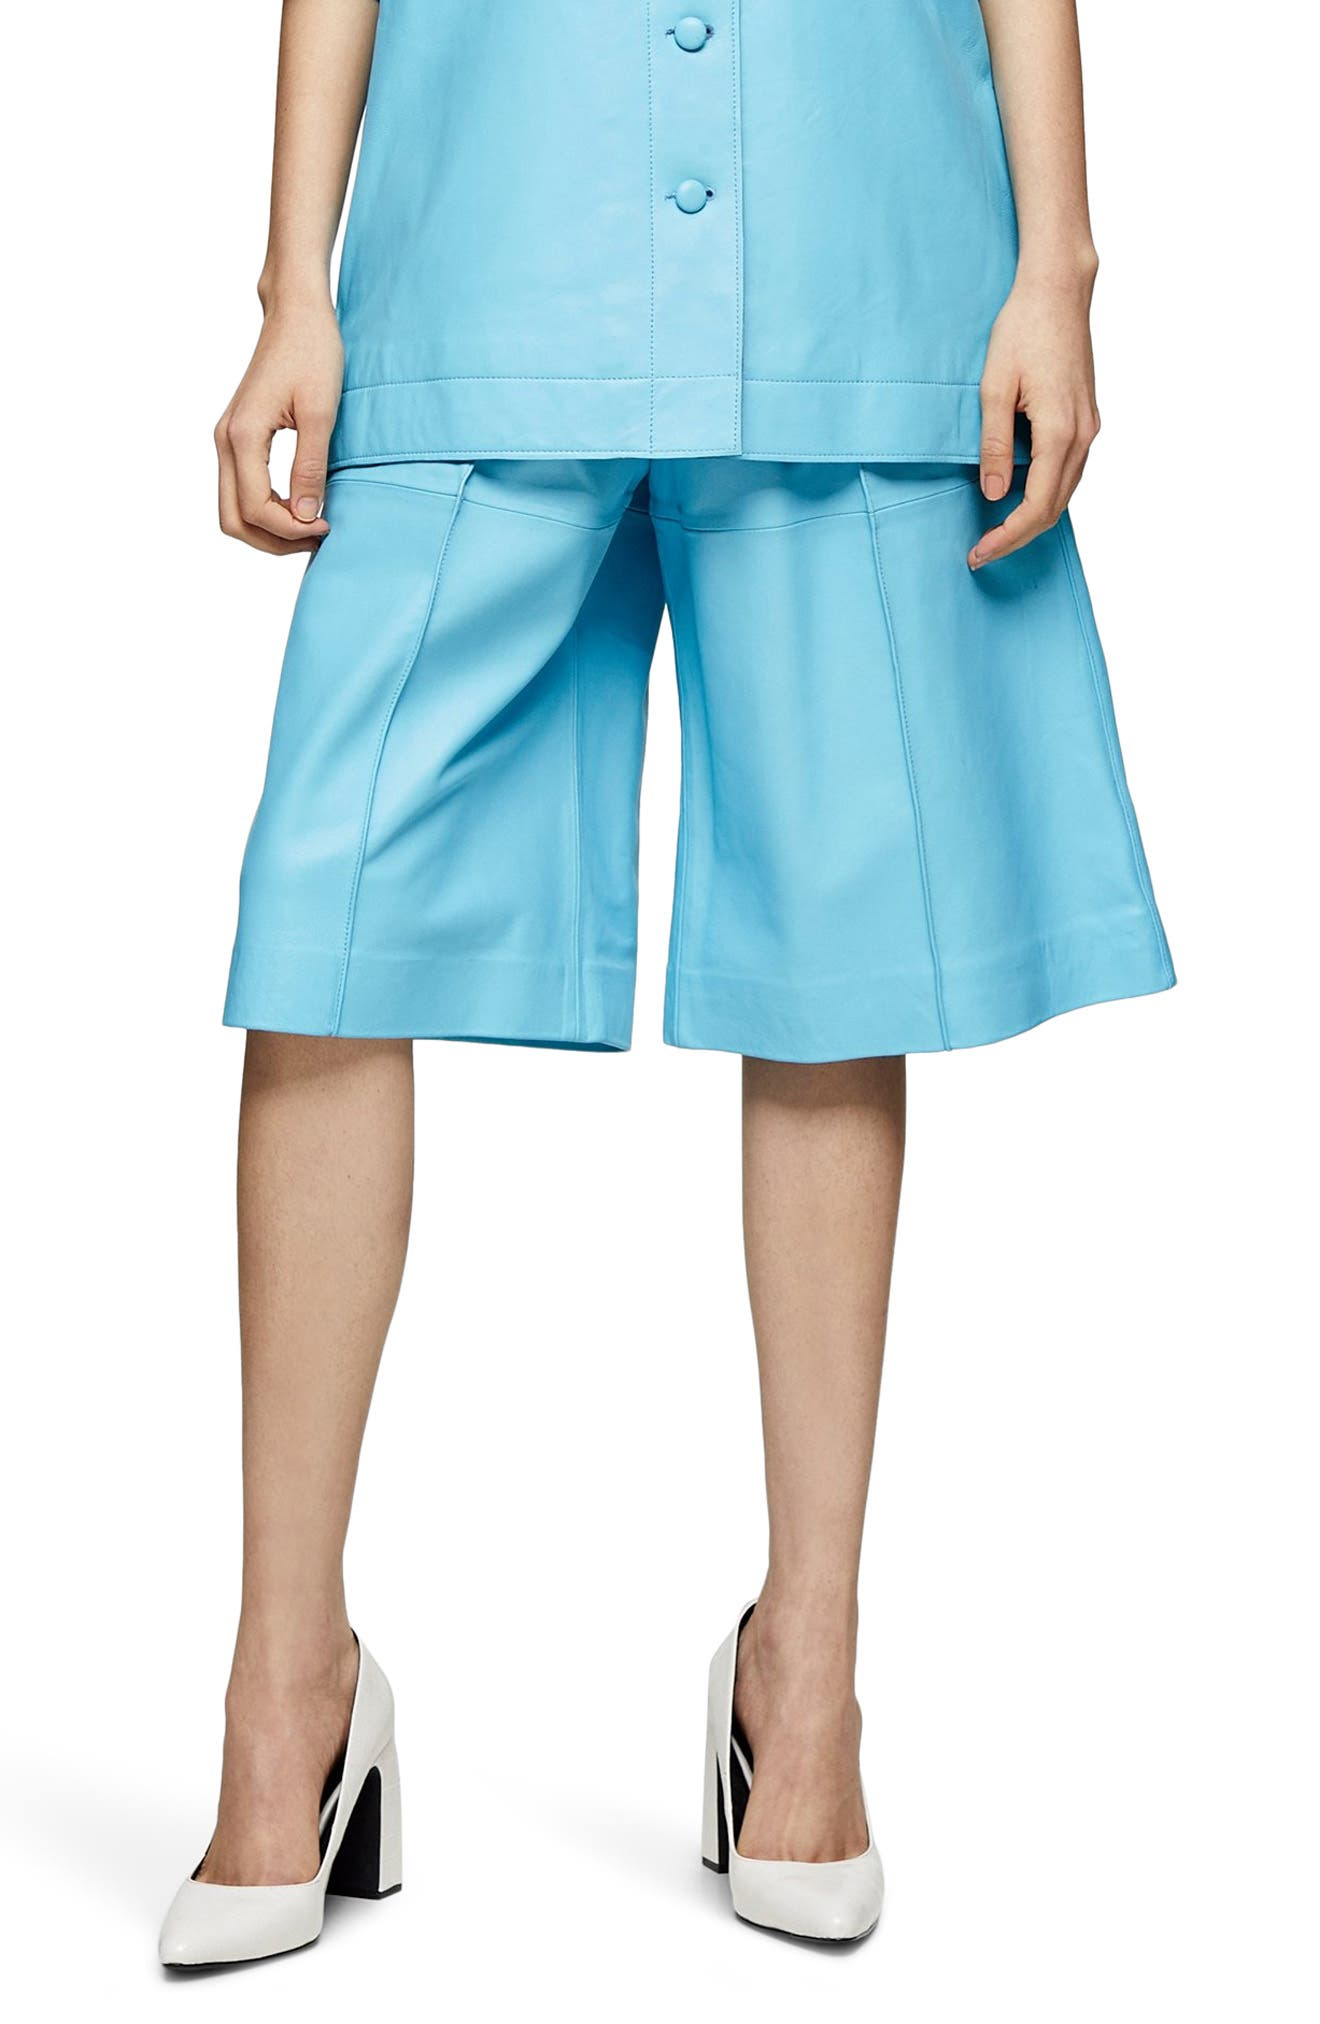 Women's Topshop Boutique Leather Bermuda Shorts,  2 US (fits like 0) - Blue